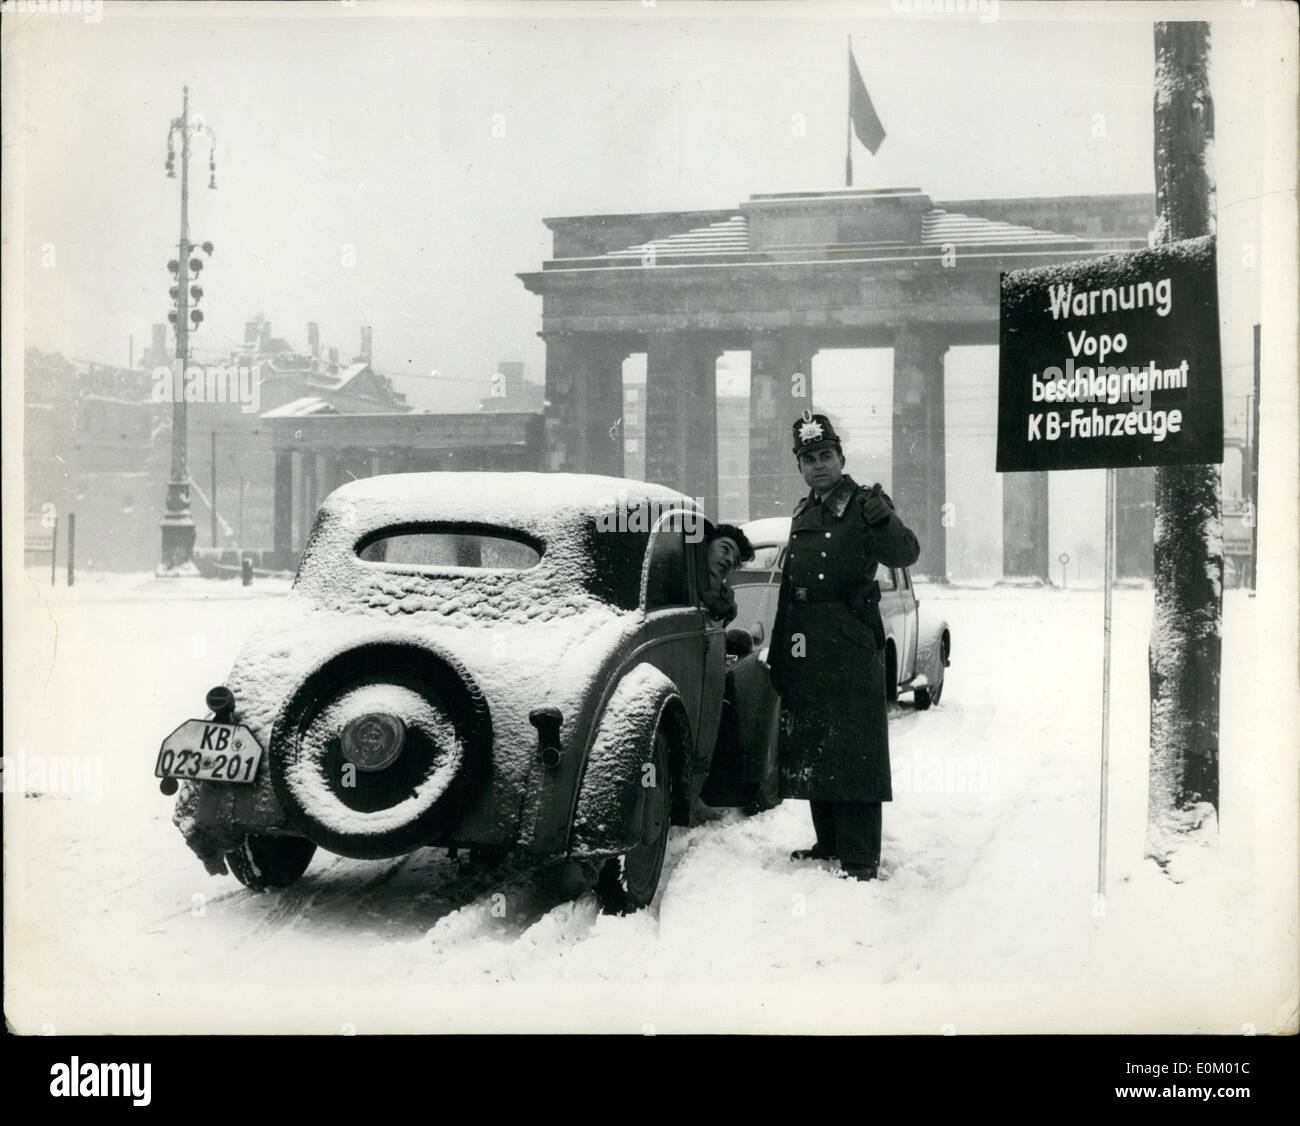 Dec. 12, 1952 - New Berlin warning to motorist Don't take car into Russian zone. New notices have appeared in Berlin at the entries into the Russian zone. warning west Berlin motorists that their cars will probably be confiscated by the Russian Vopo (people police). It was a common thing for west Berliners to drive over to east Berlin in their cars but there have been so many complaints that the vopo have taken their cars and sent them back on foot - thus the warnings - Stock Image